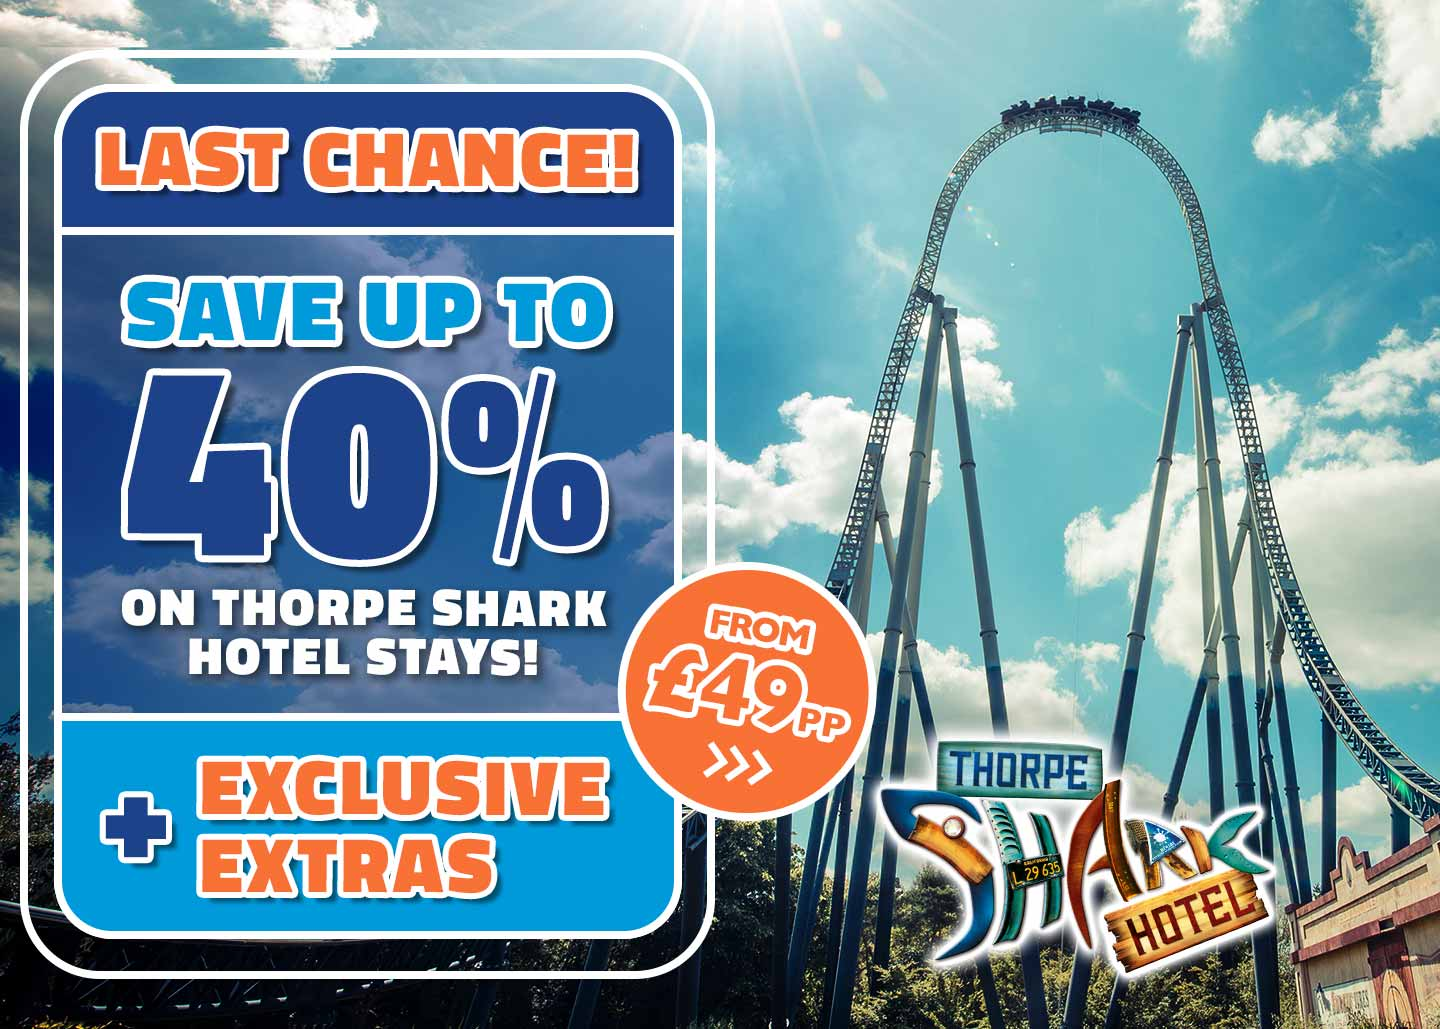 Book before 3rd March and save up to 40% on a THORPE PARK short break!